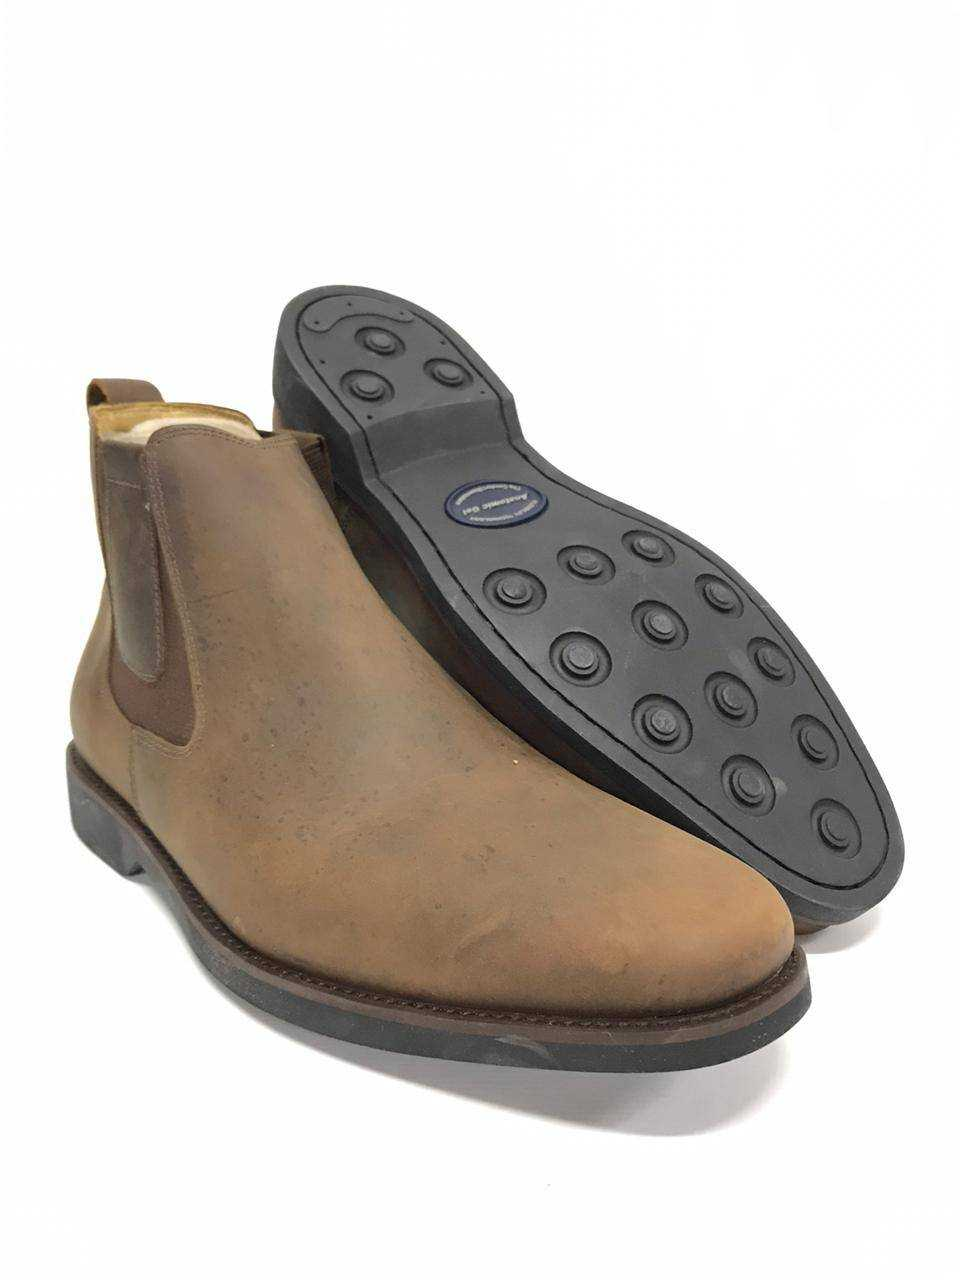 Botina Anatomic Gel Mustang Brown Ref. 5653